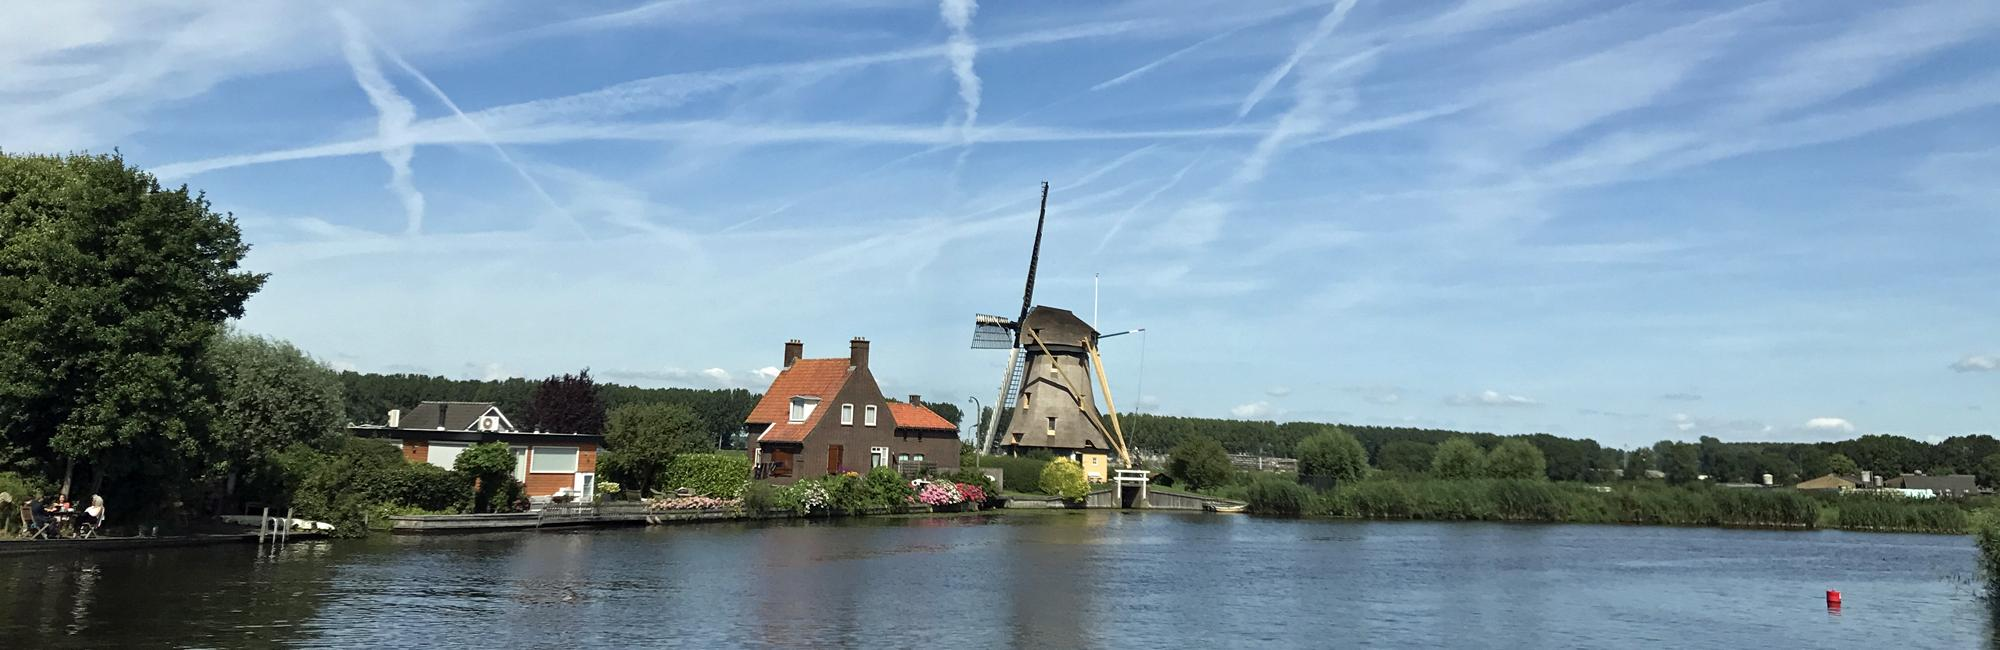 Dutch Bike Tours Cycling holiday Amsterdam – Maastricht